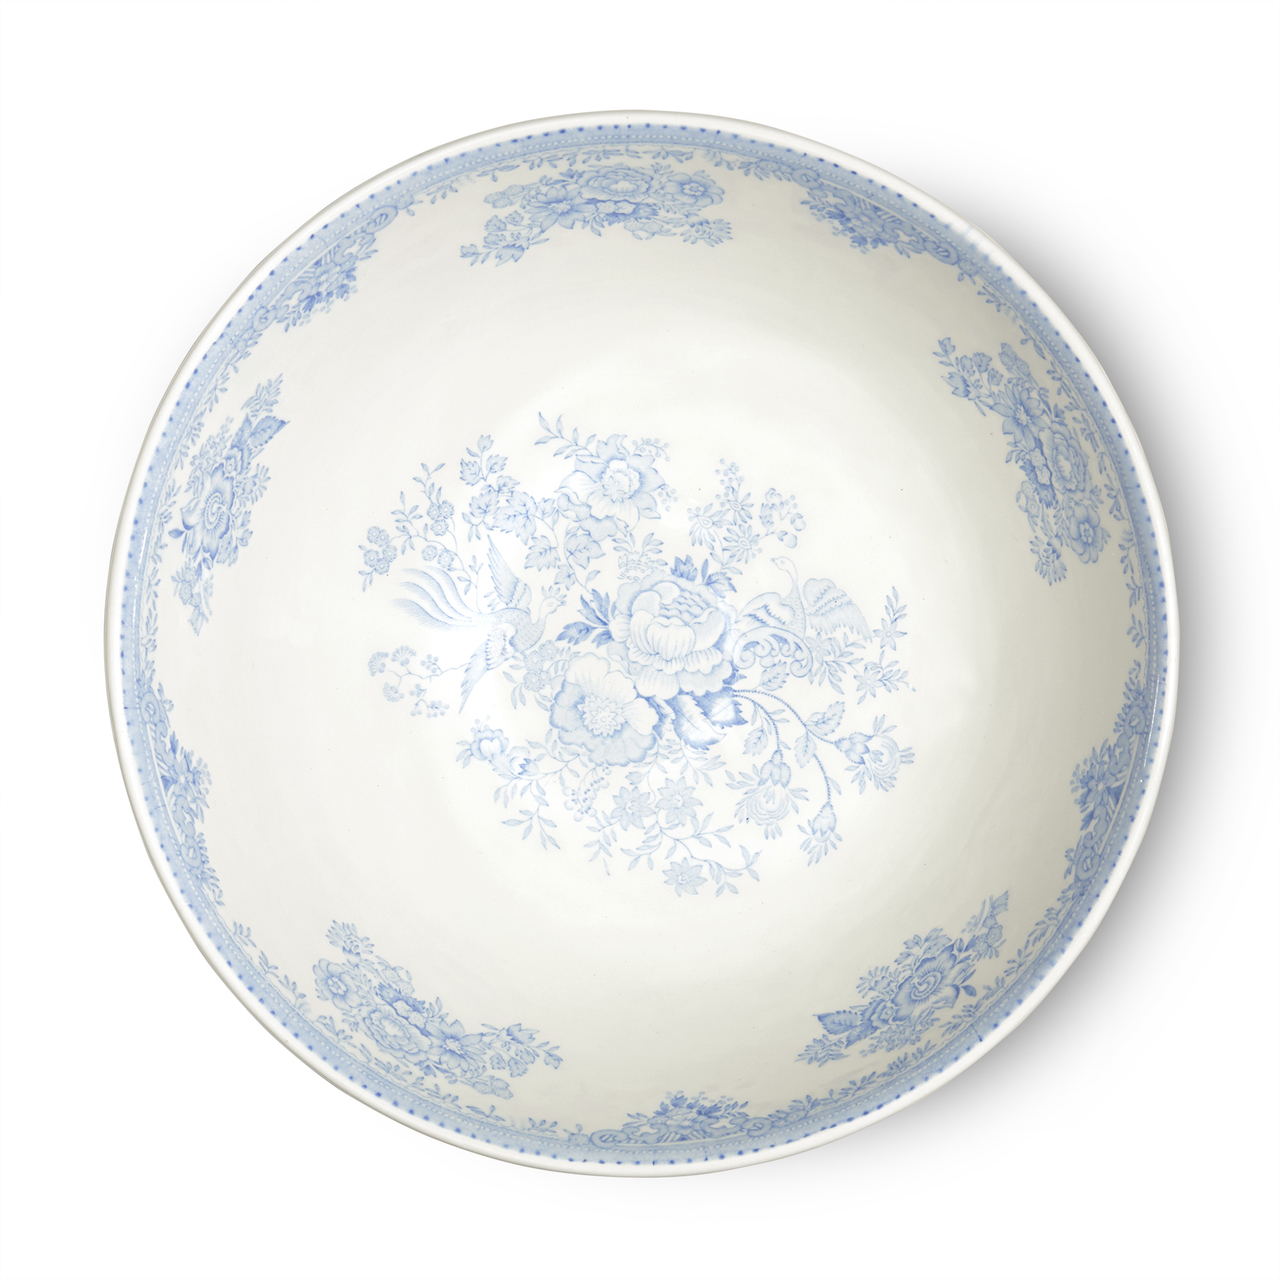 Burleigh Blue Asiatic Pheasants   Beautiful china dinnerware to adorn your tablescapes and add to your Sasha Nicholas wedding & gift registry